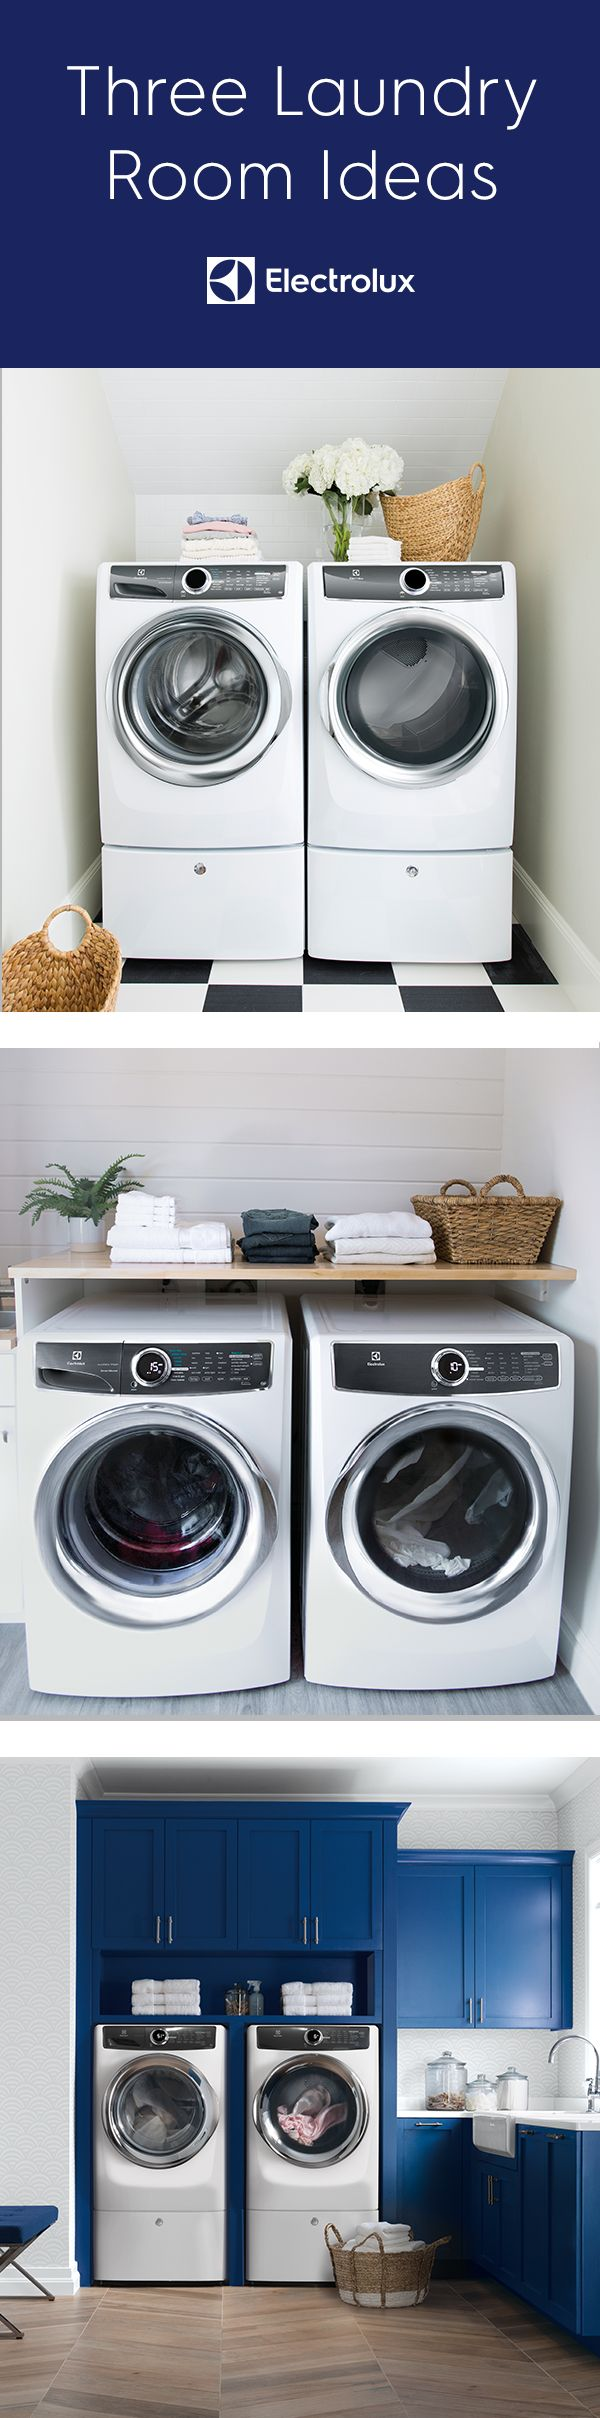 Explore some laundry room inspiration with all-white appliances. #1 -- simple but elegant -- use baskets and the top of your appliances for storage if there's no room for shelving. Two, white tile in the background and a wooden shelf add style and functionality to your space. Third, go bold with your cabinet color to provide some beautiful contrast and extra storage space.